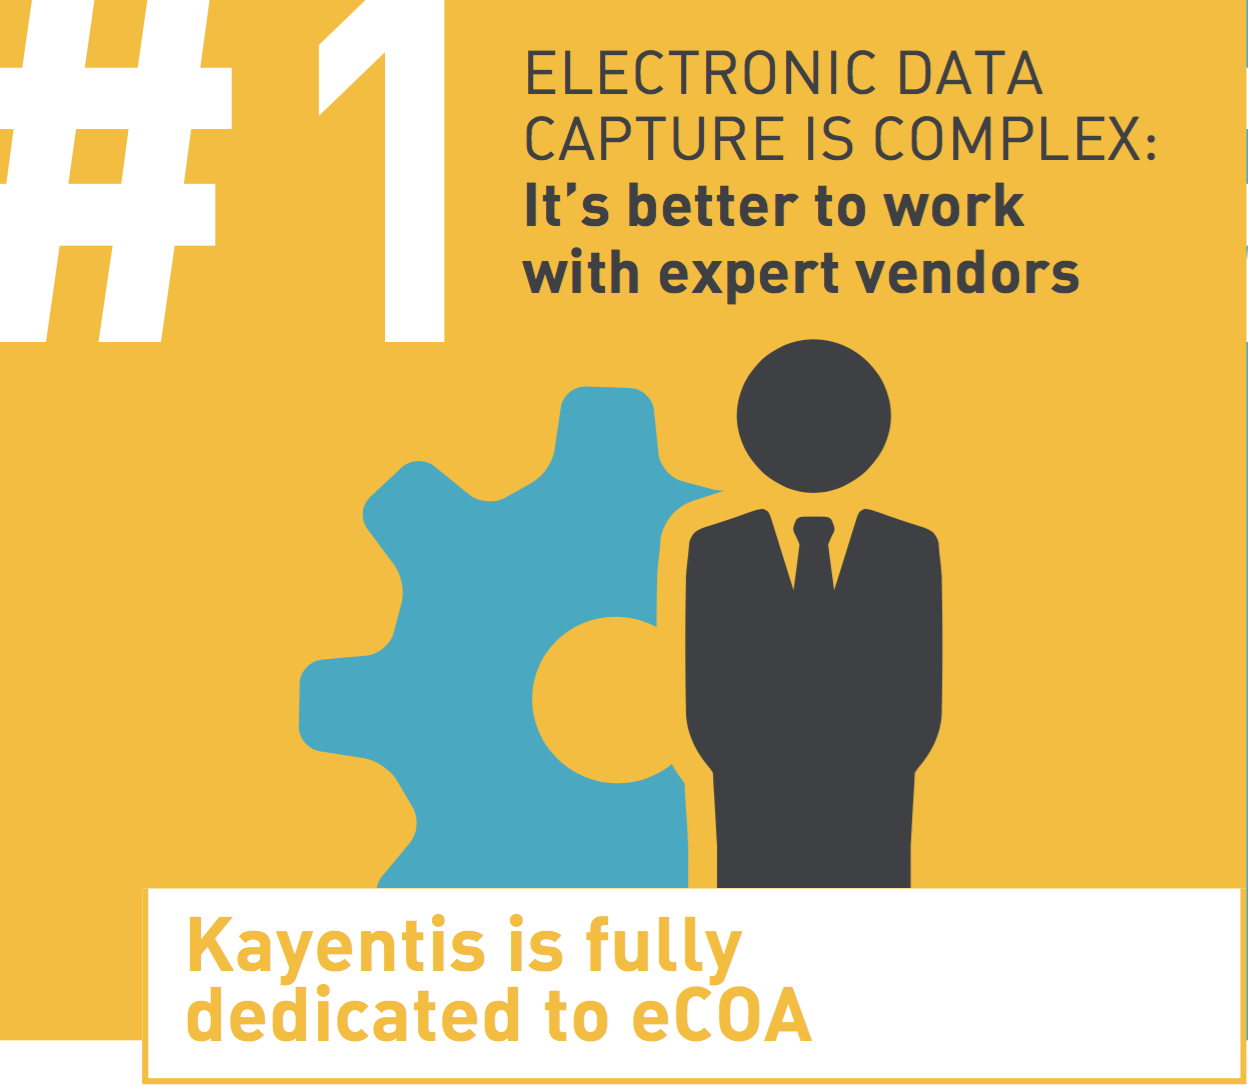 Kayentis_eCOA_data_expertise